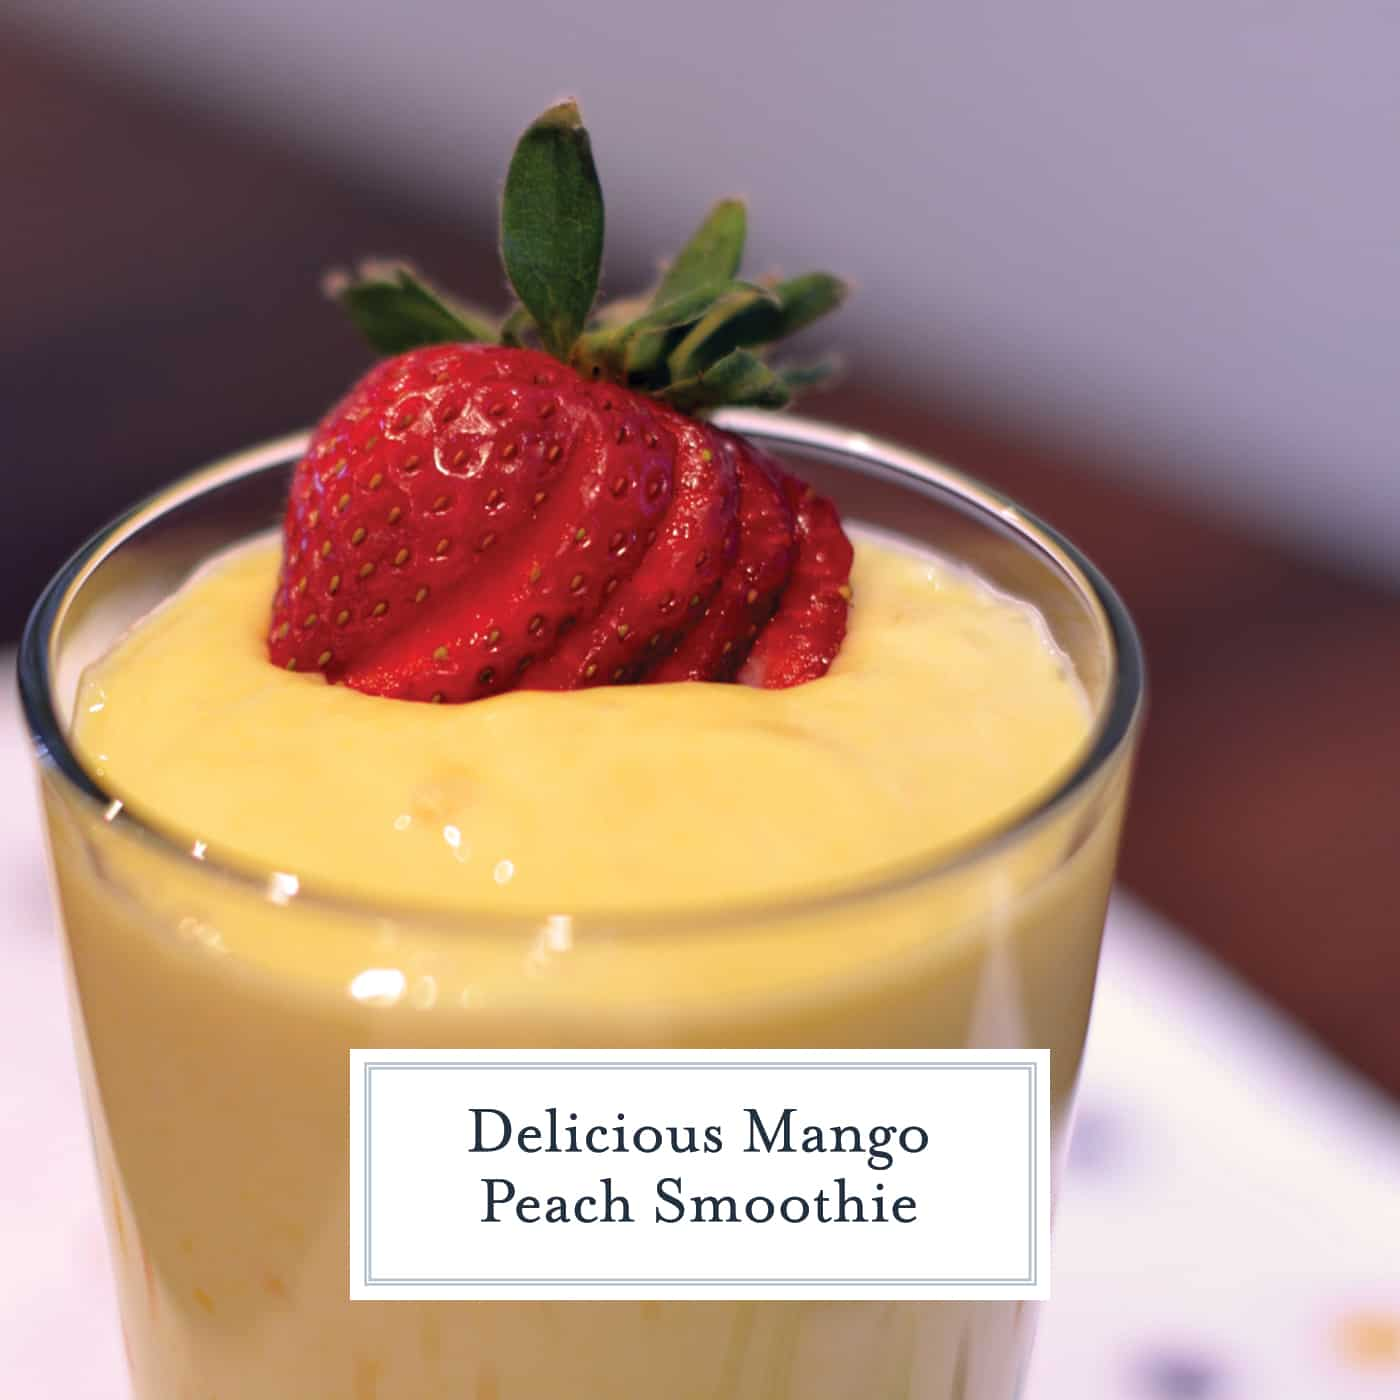 Mango Peach Smoothie uses mango, peaches, Greek yogurt and skim milk for a silky, smoothie and refreshing smoothie. Full of flavor and antioxidants, you can't go wrong! #fruitsmoothie #morningsmoothie www.savoryexperiments.com